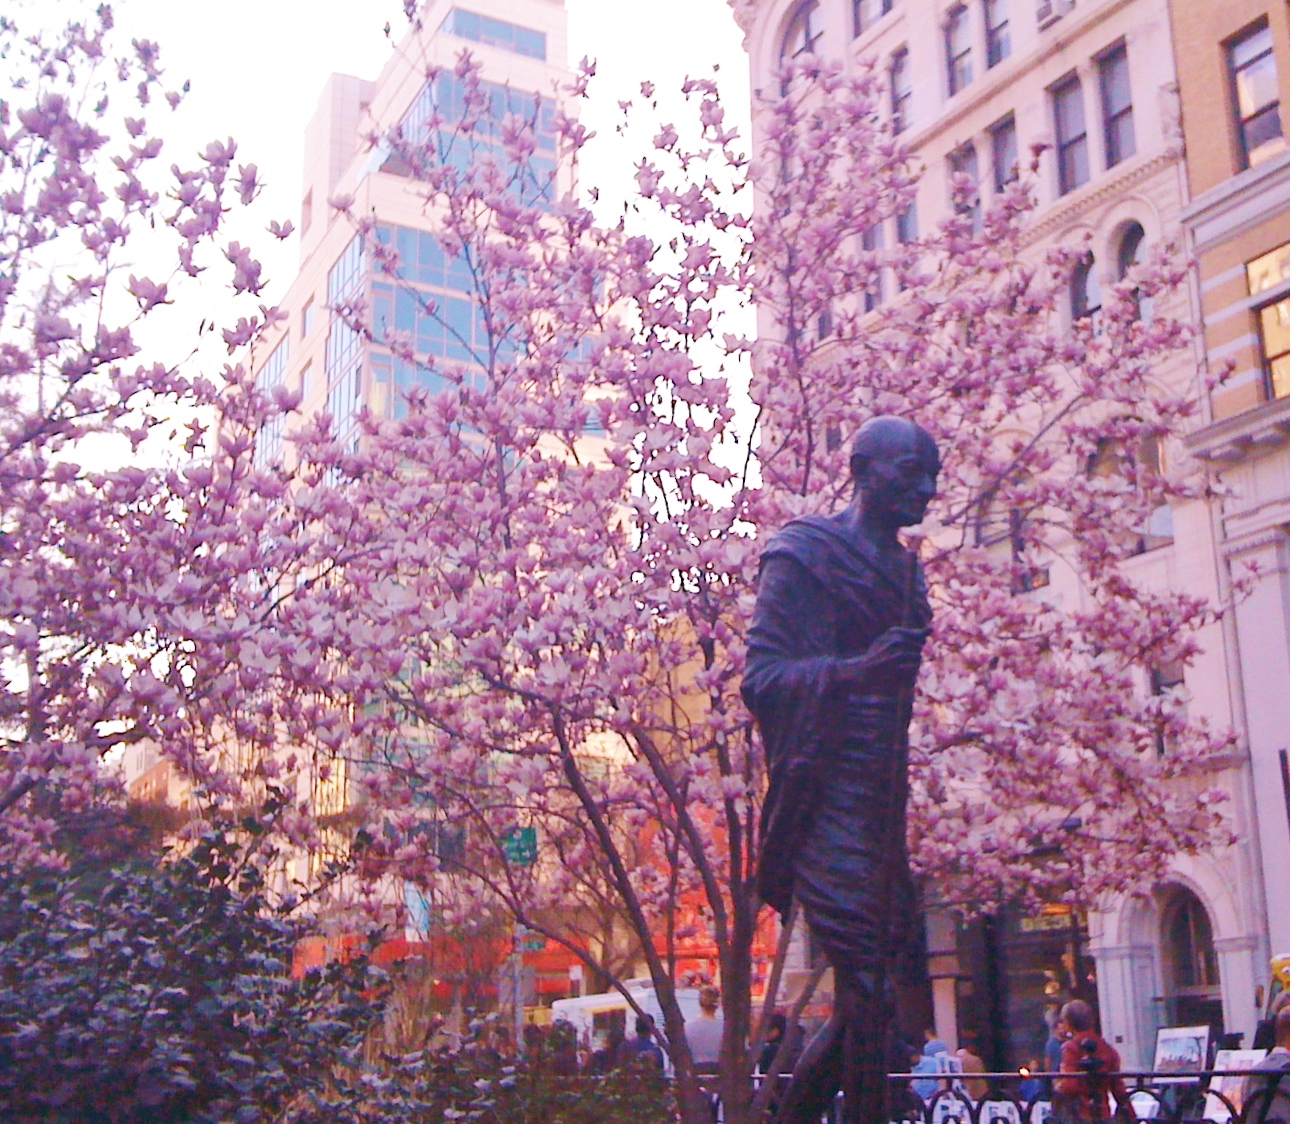 Magnolias open and gandhi walks union square nyc j j for Flowers union square nyc